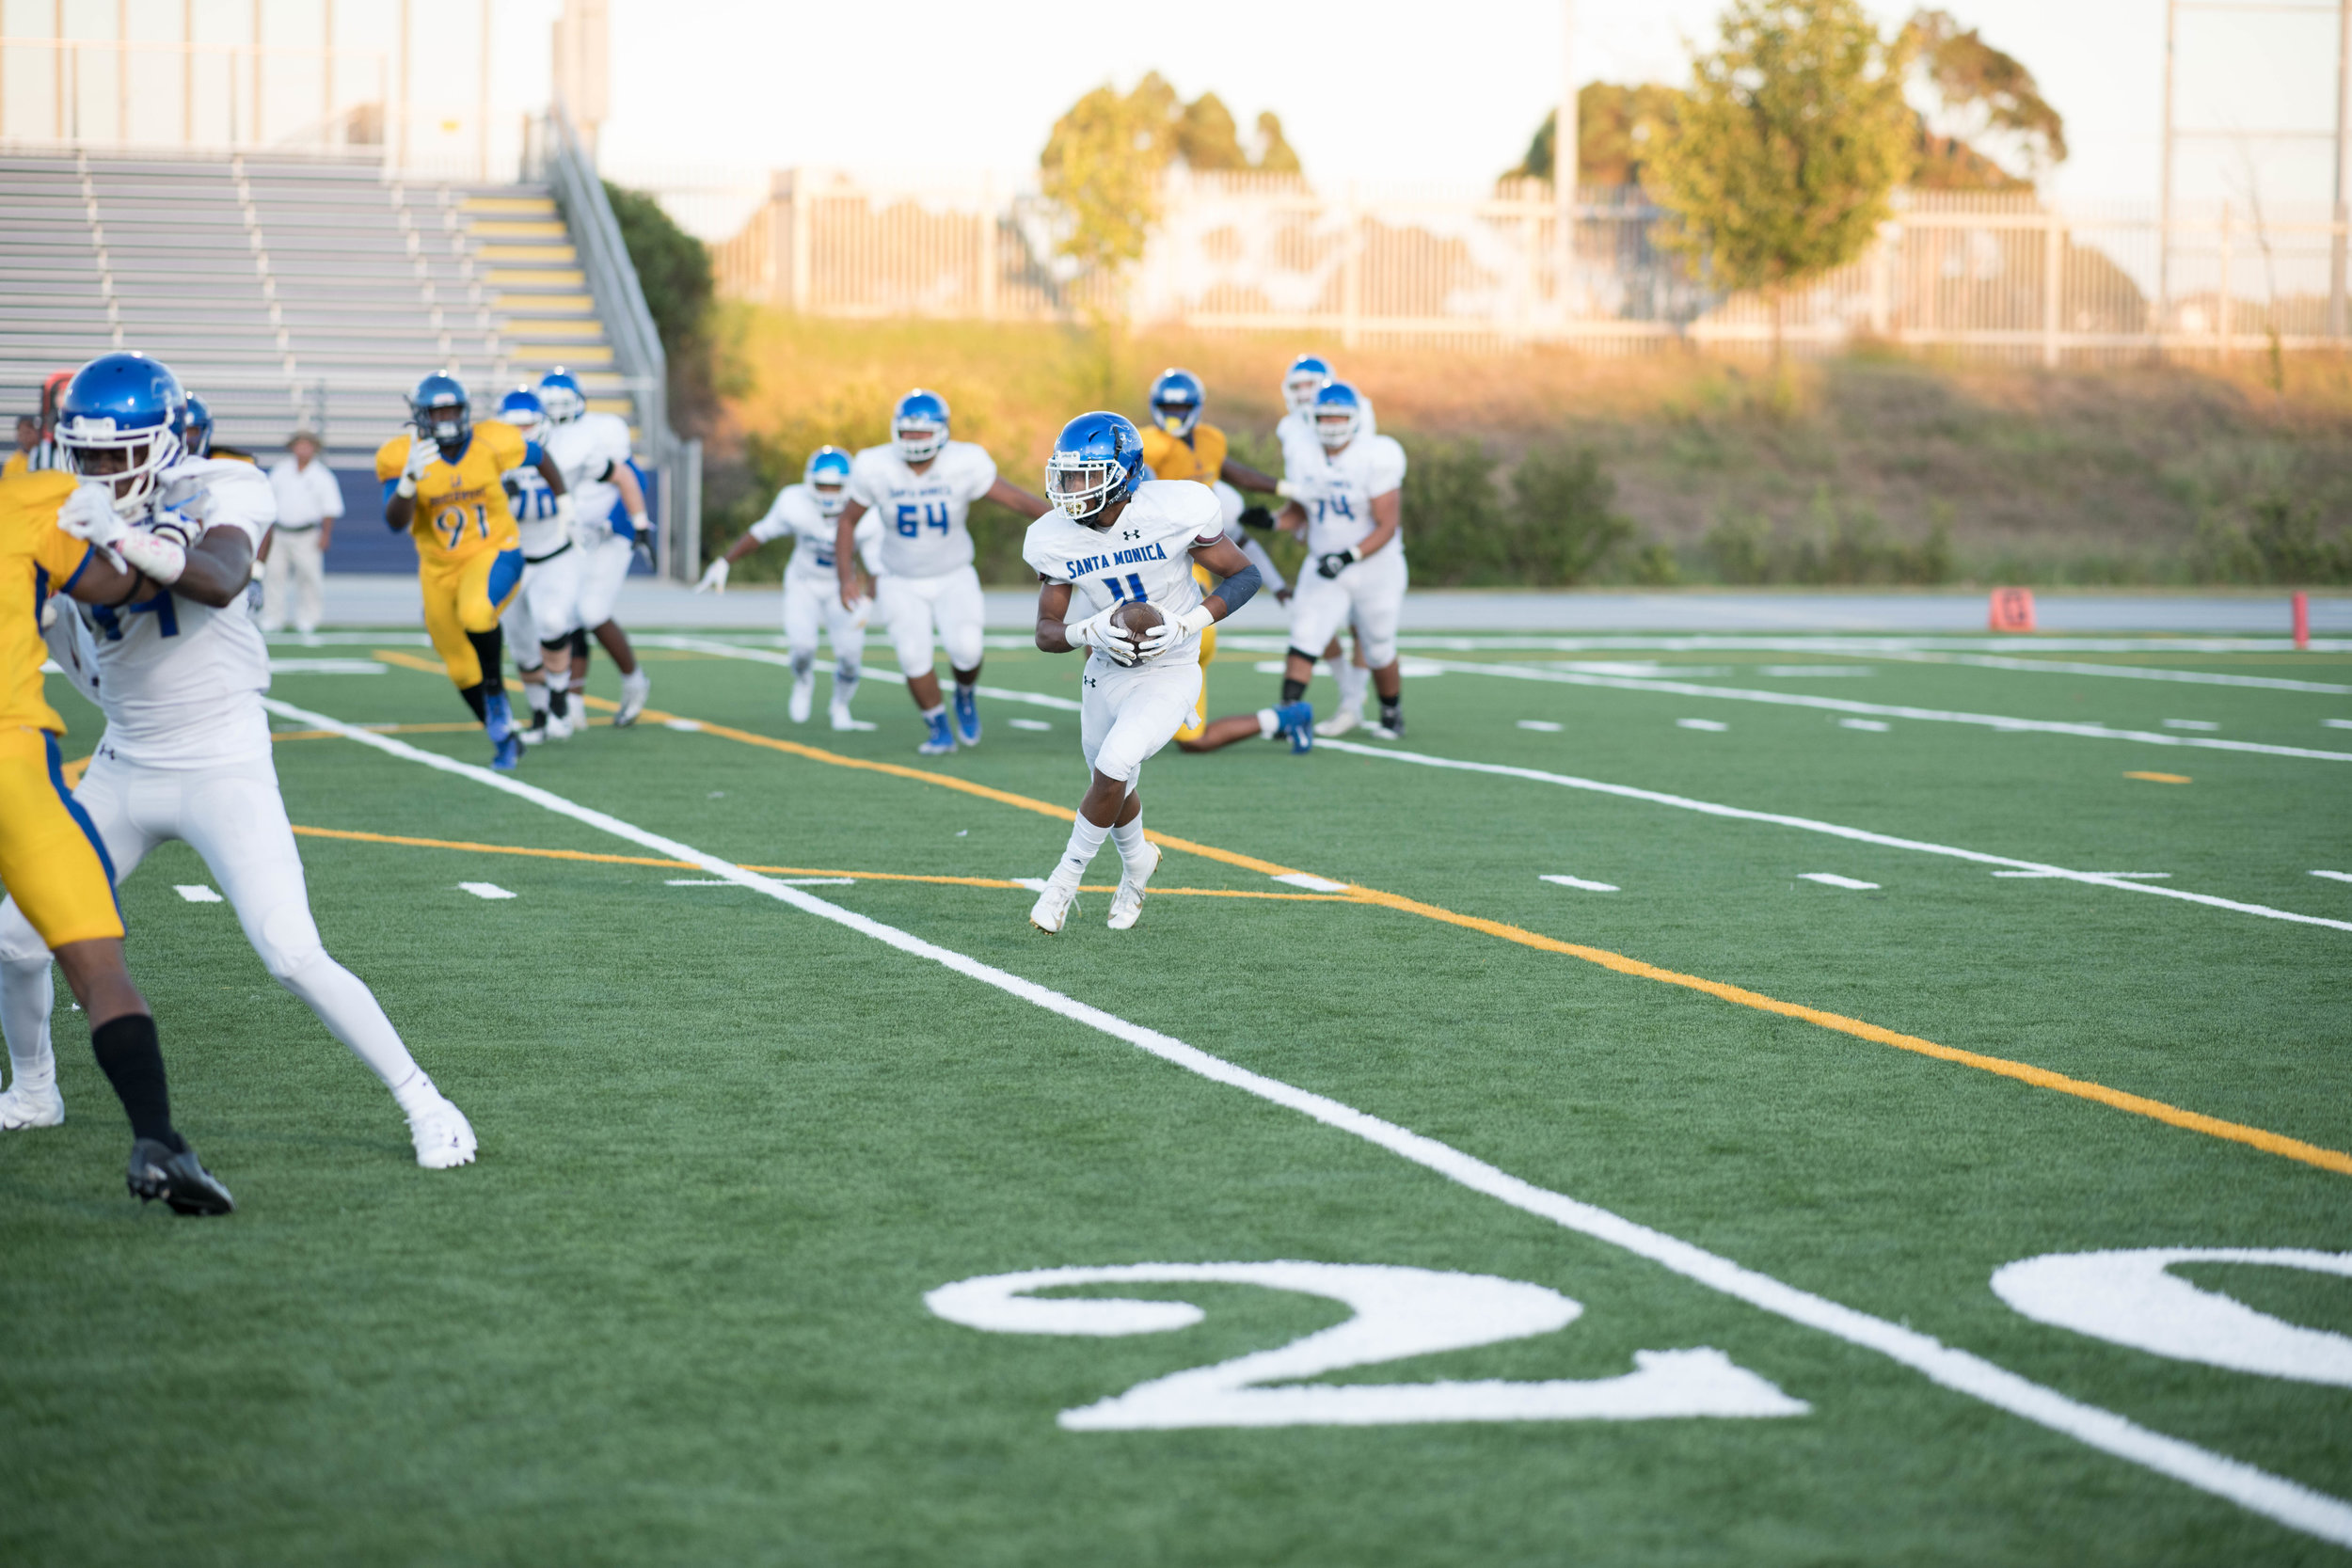 After making the reception #4 Akili Warren Jr. looks to make a play and gain yards.(Photo By Kevin Tidmore/The Corsair)